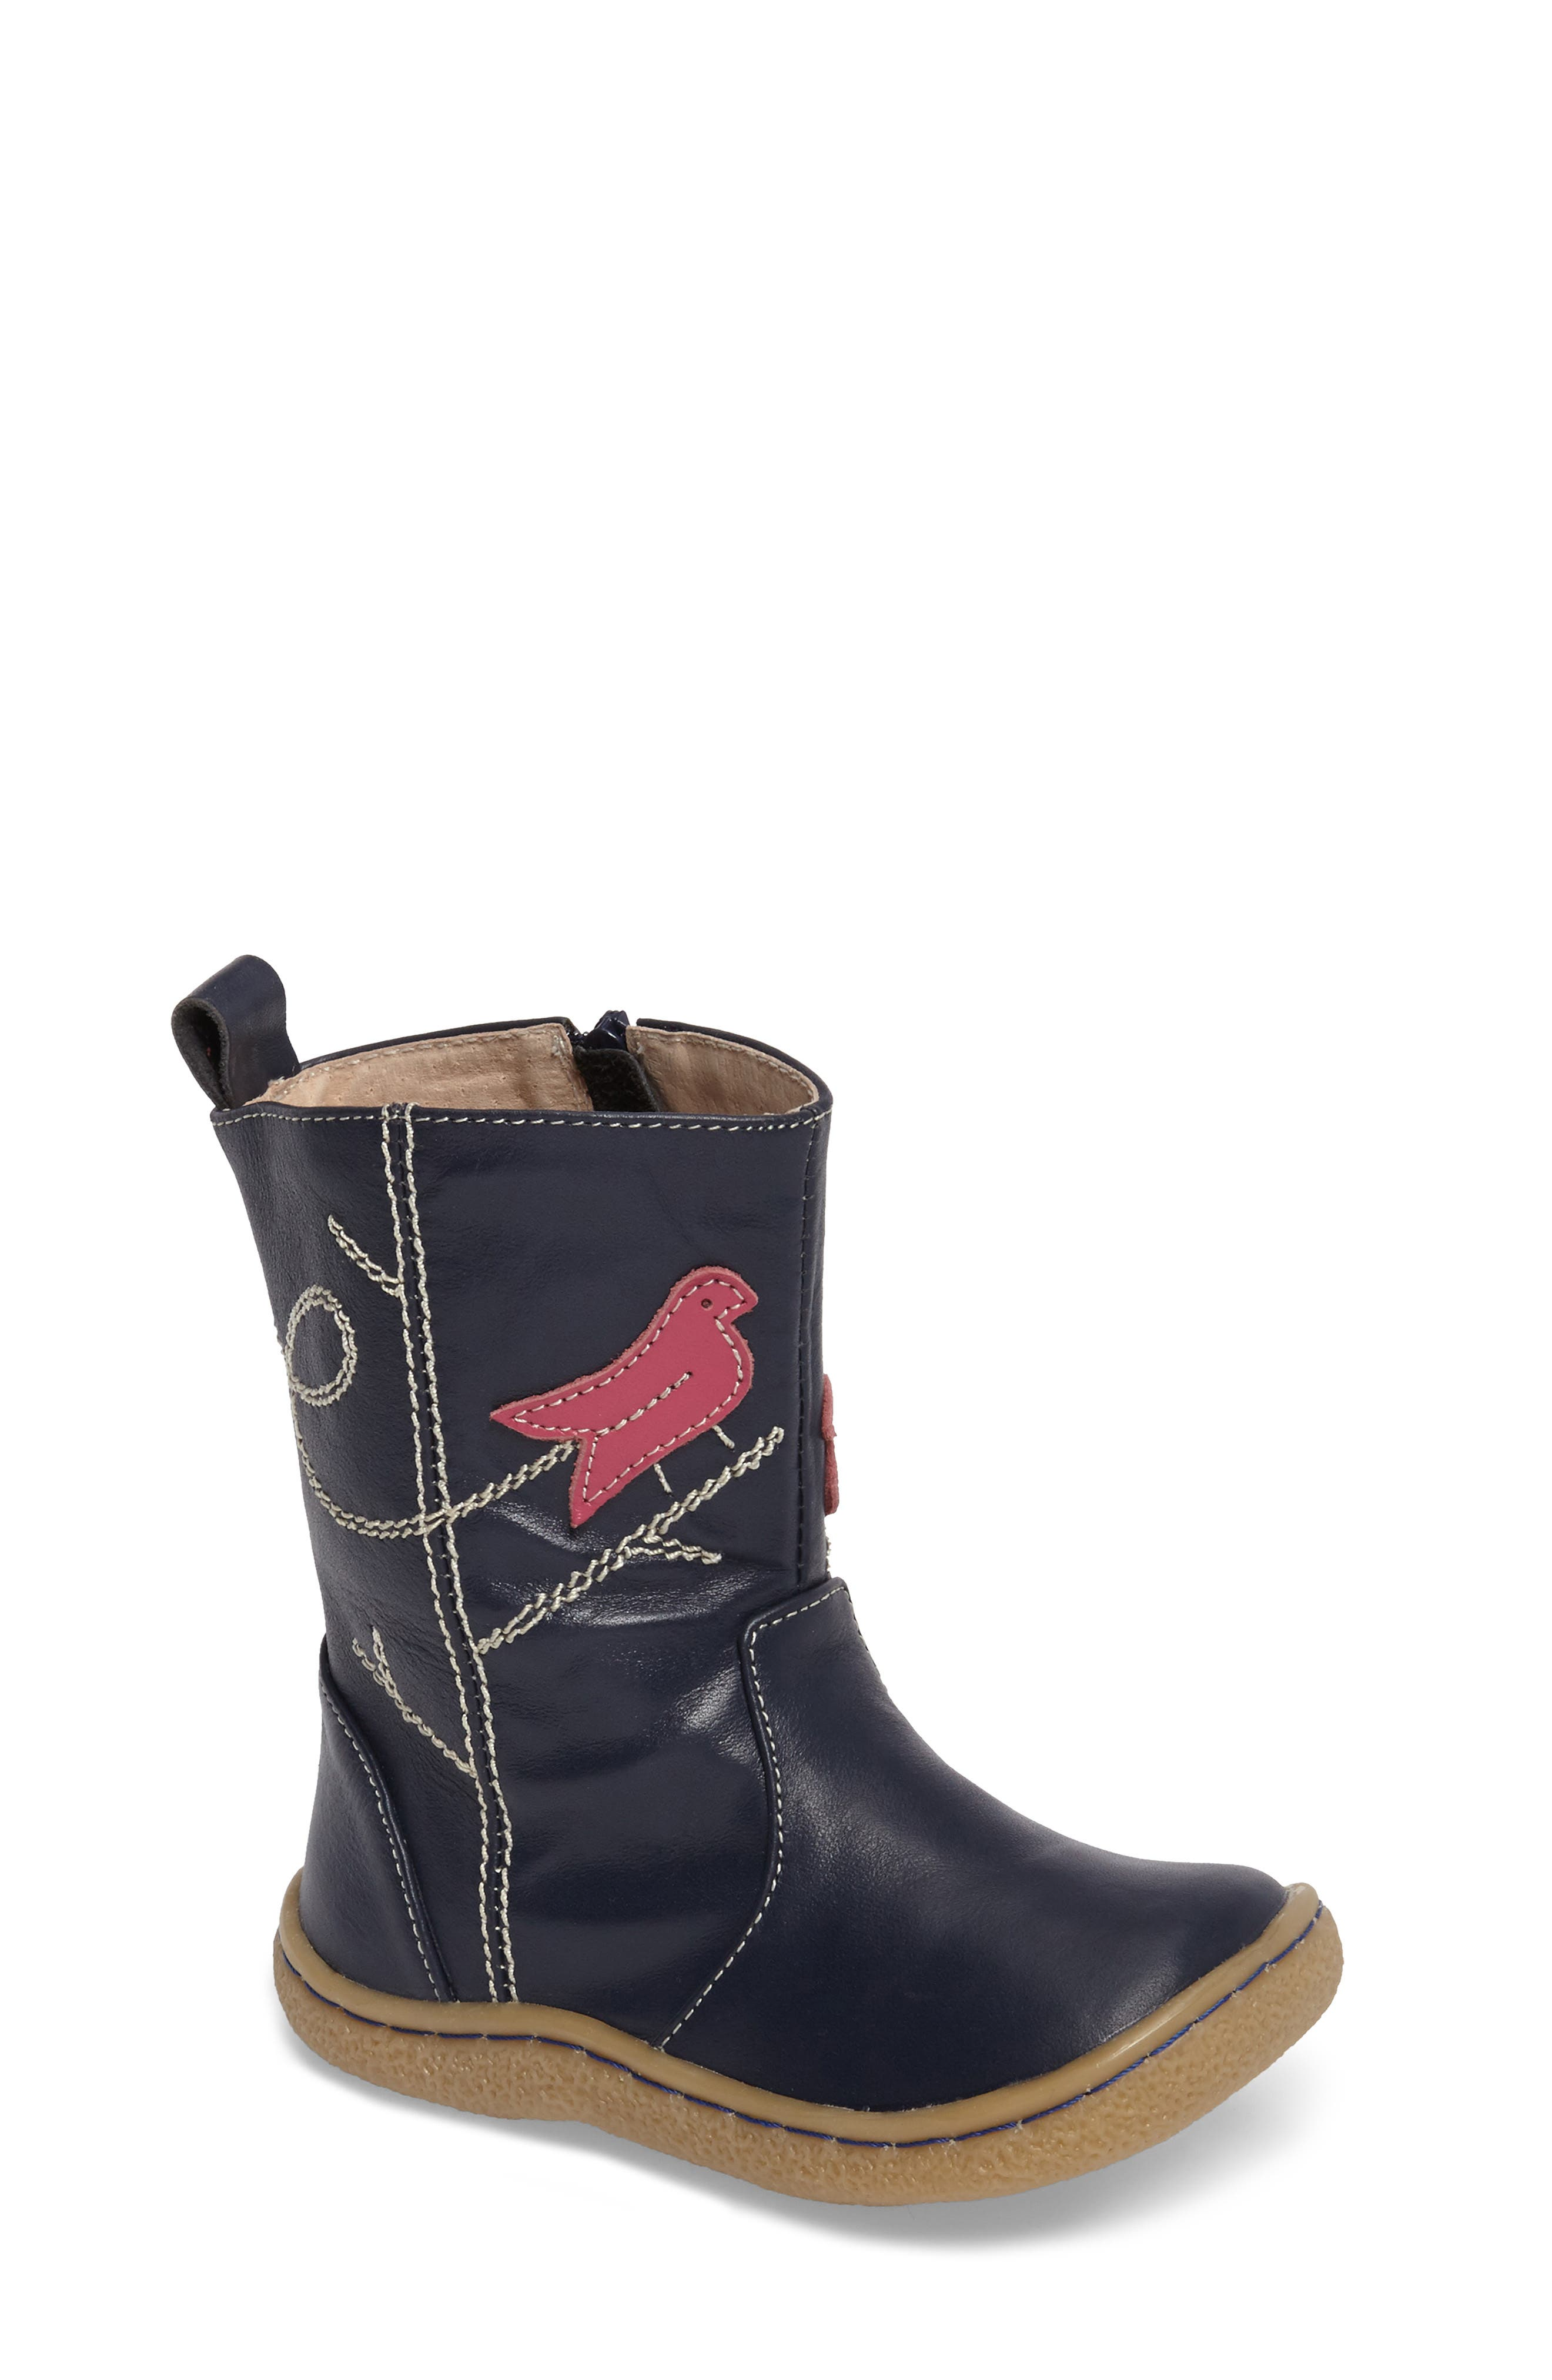 Livie & Luca Pio Pio Bird Appliqué Boot (Baby, Walker, Toddler & Little Kid)